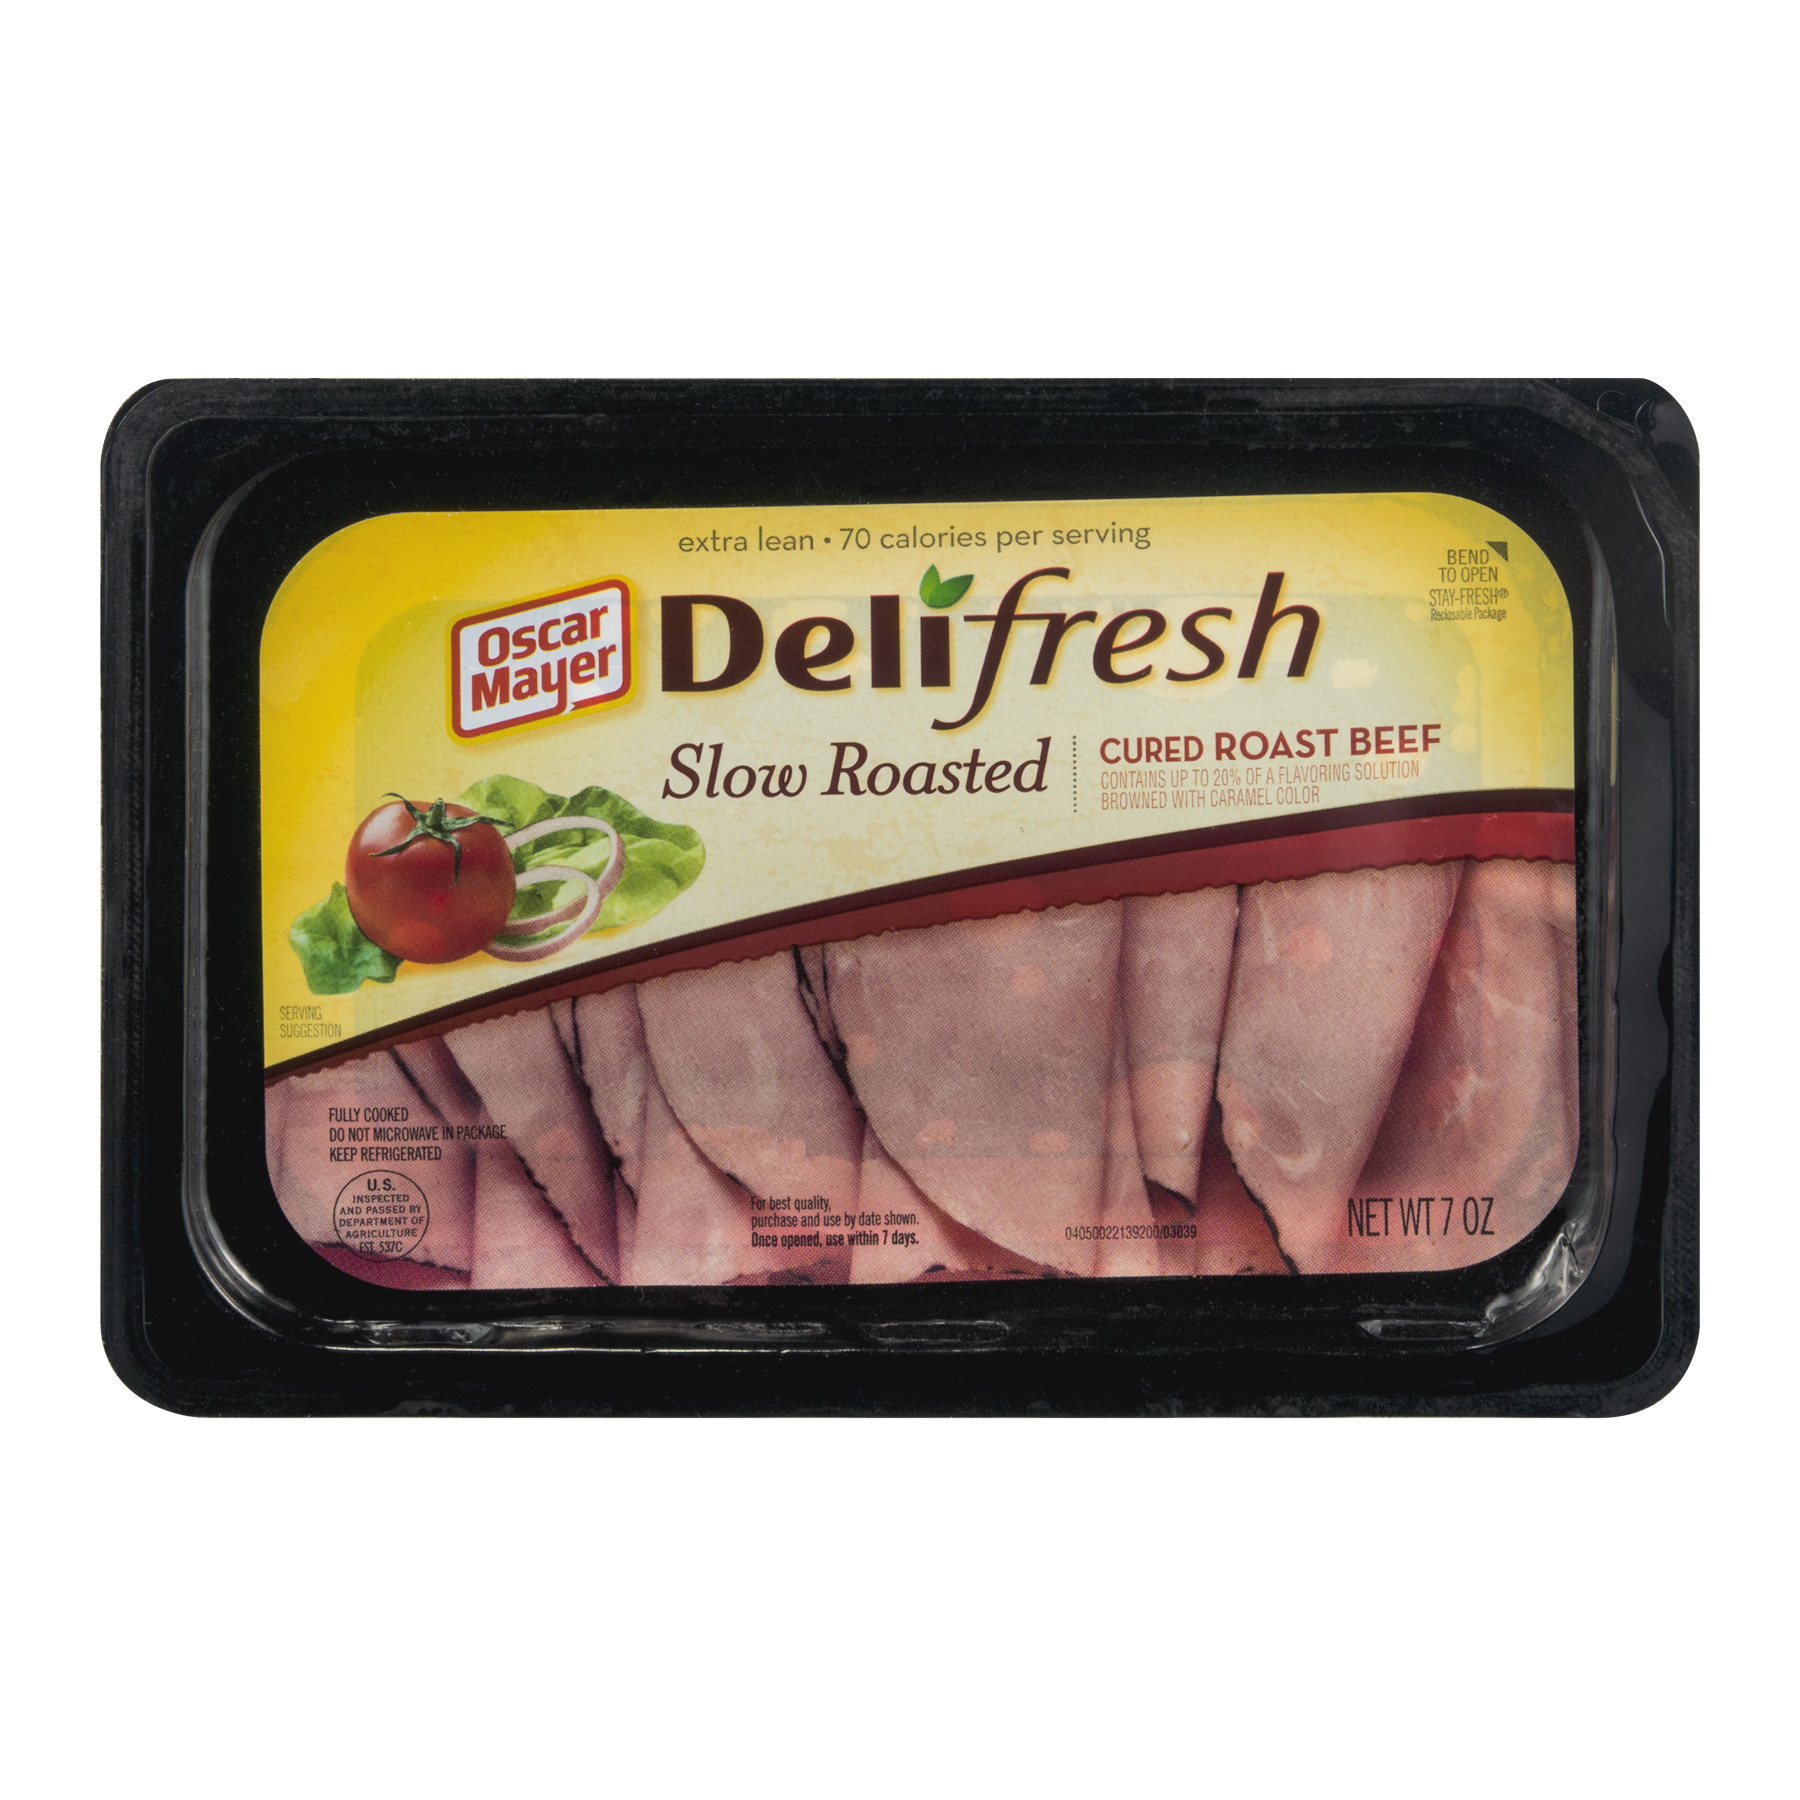 Oscar Mayer Deli Fresh Slow Roasted Cured Roast Beef